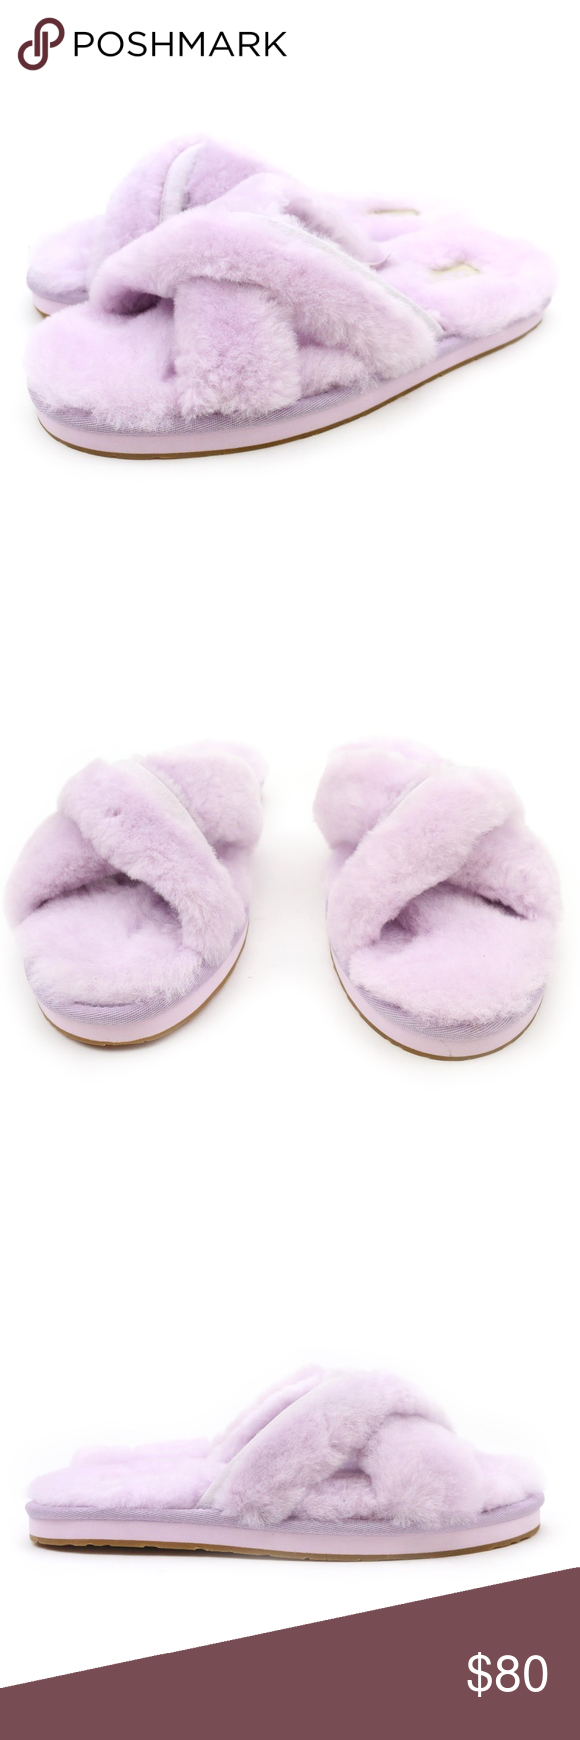 ed00eeb7837 UGG Abela Lavender Fog Purple Sheepskin Slides NEW Super cute and ...